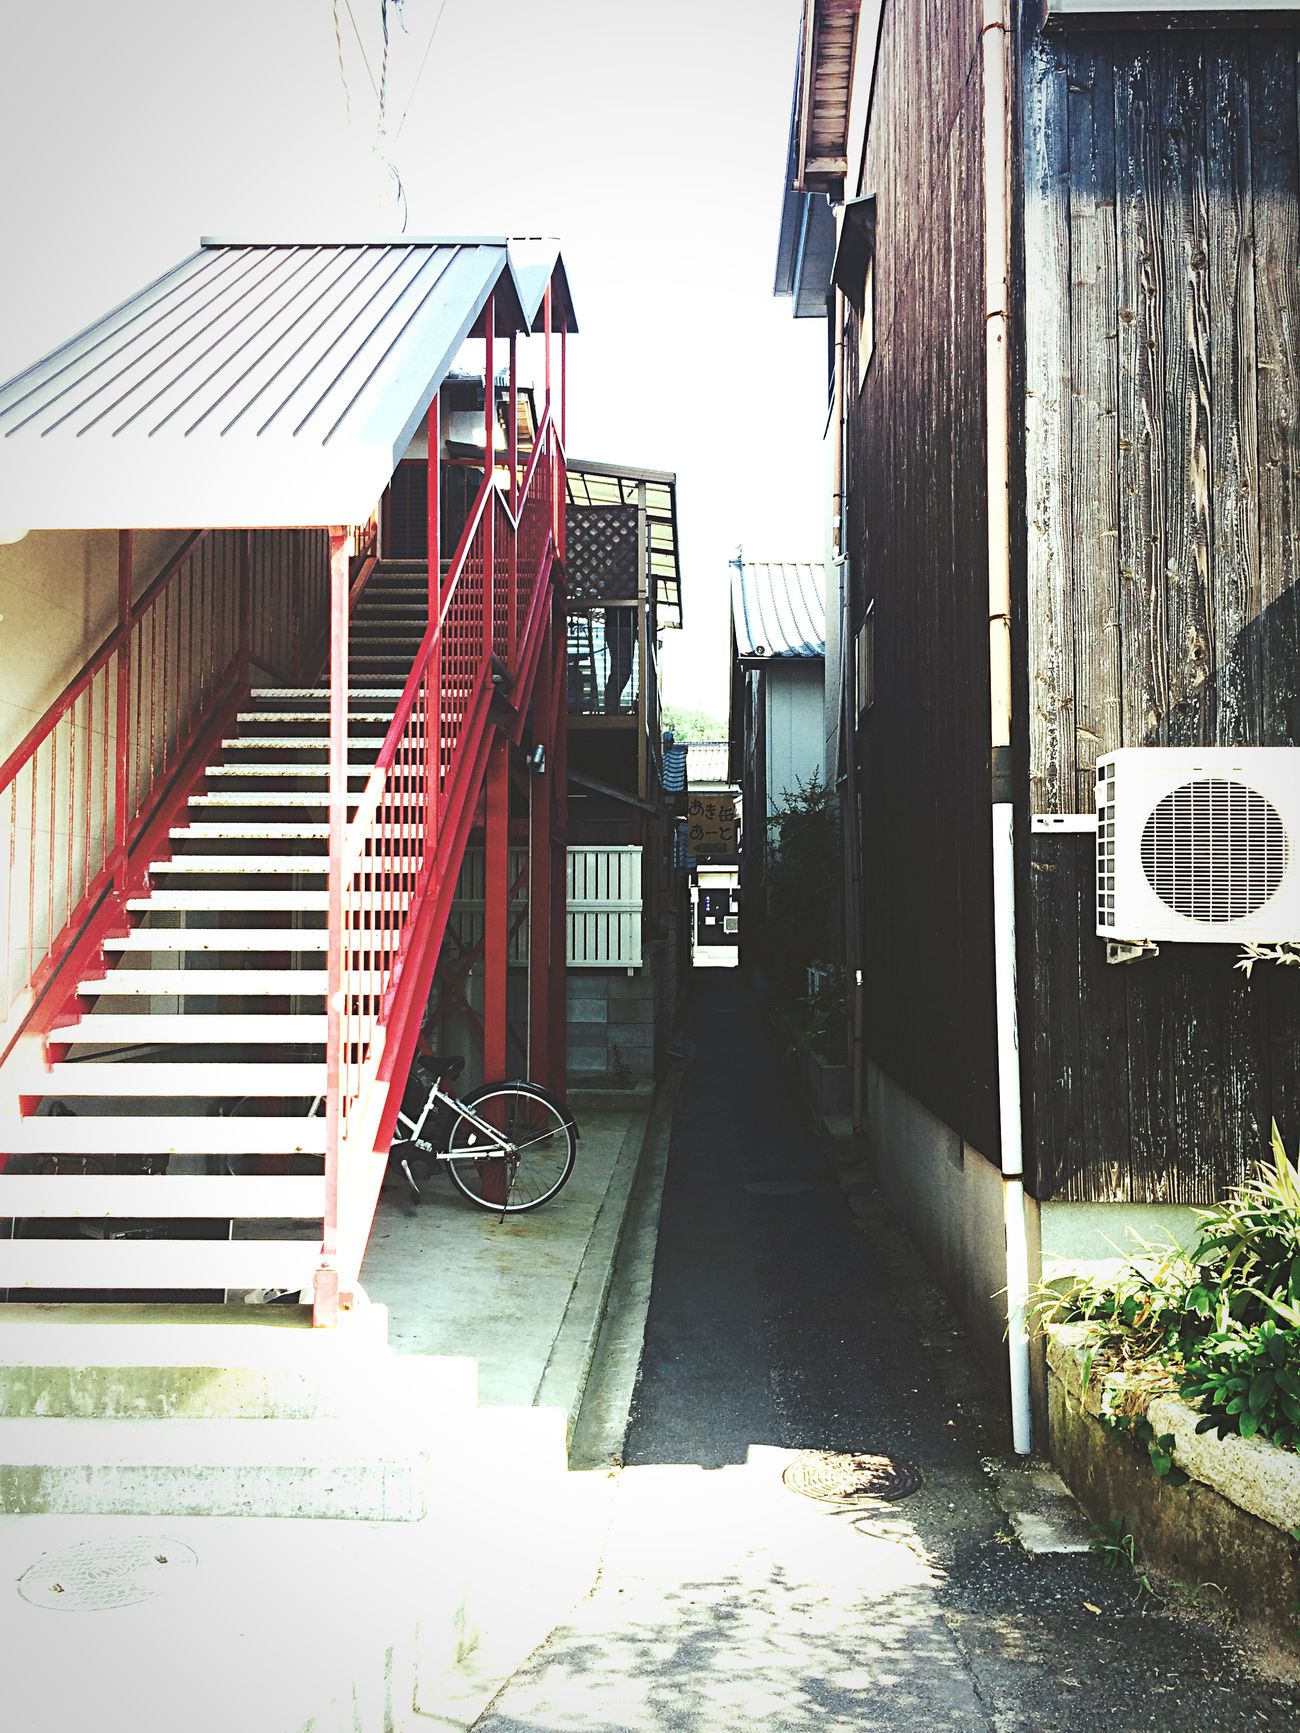 Cafes in alleyways JapanLife Travel Photography Streetphotography EyeEm Best Shots Summer Island Holiday POV